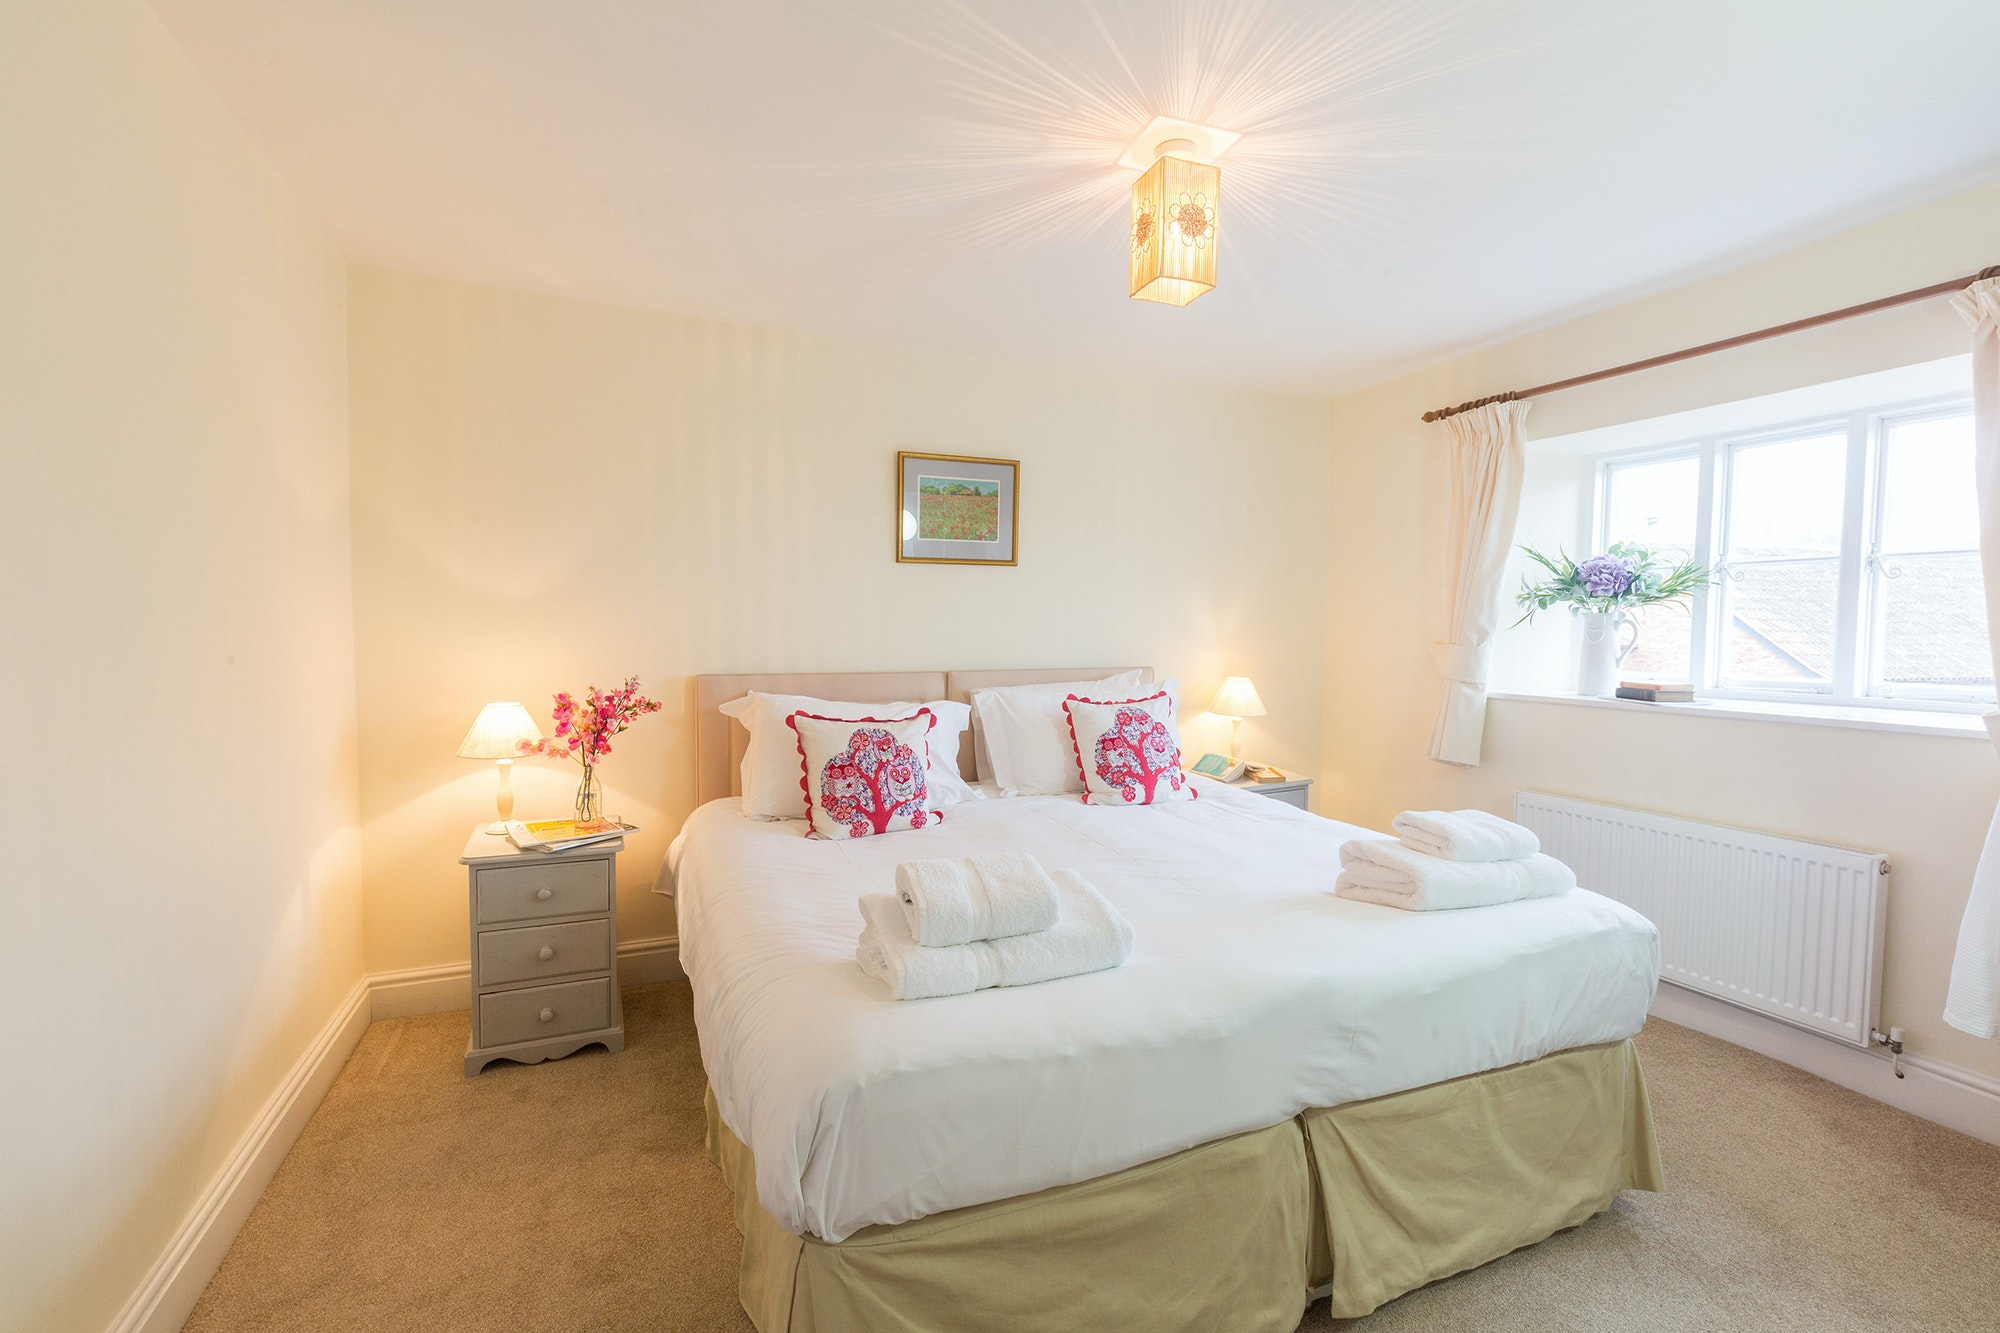 ... Pound Farm   Bedroom 4: Bedrooms Are So Calm And Relaxing At Pound Farm